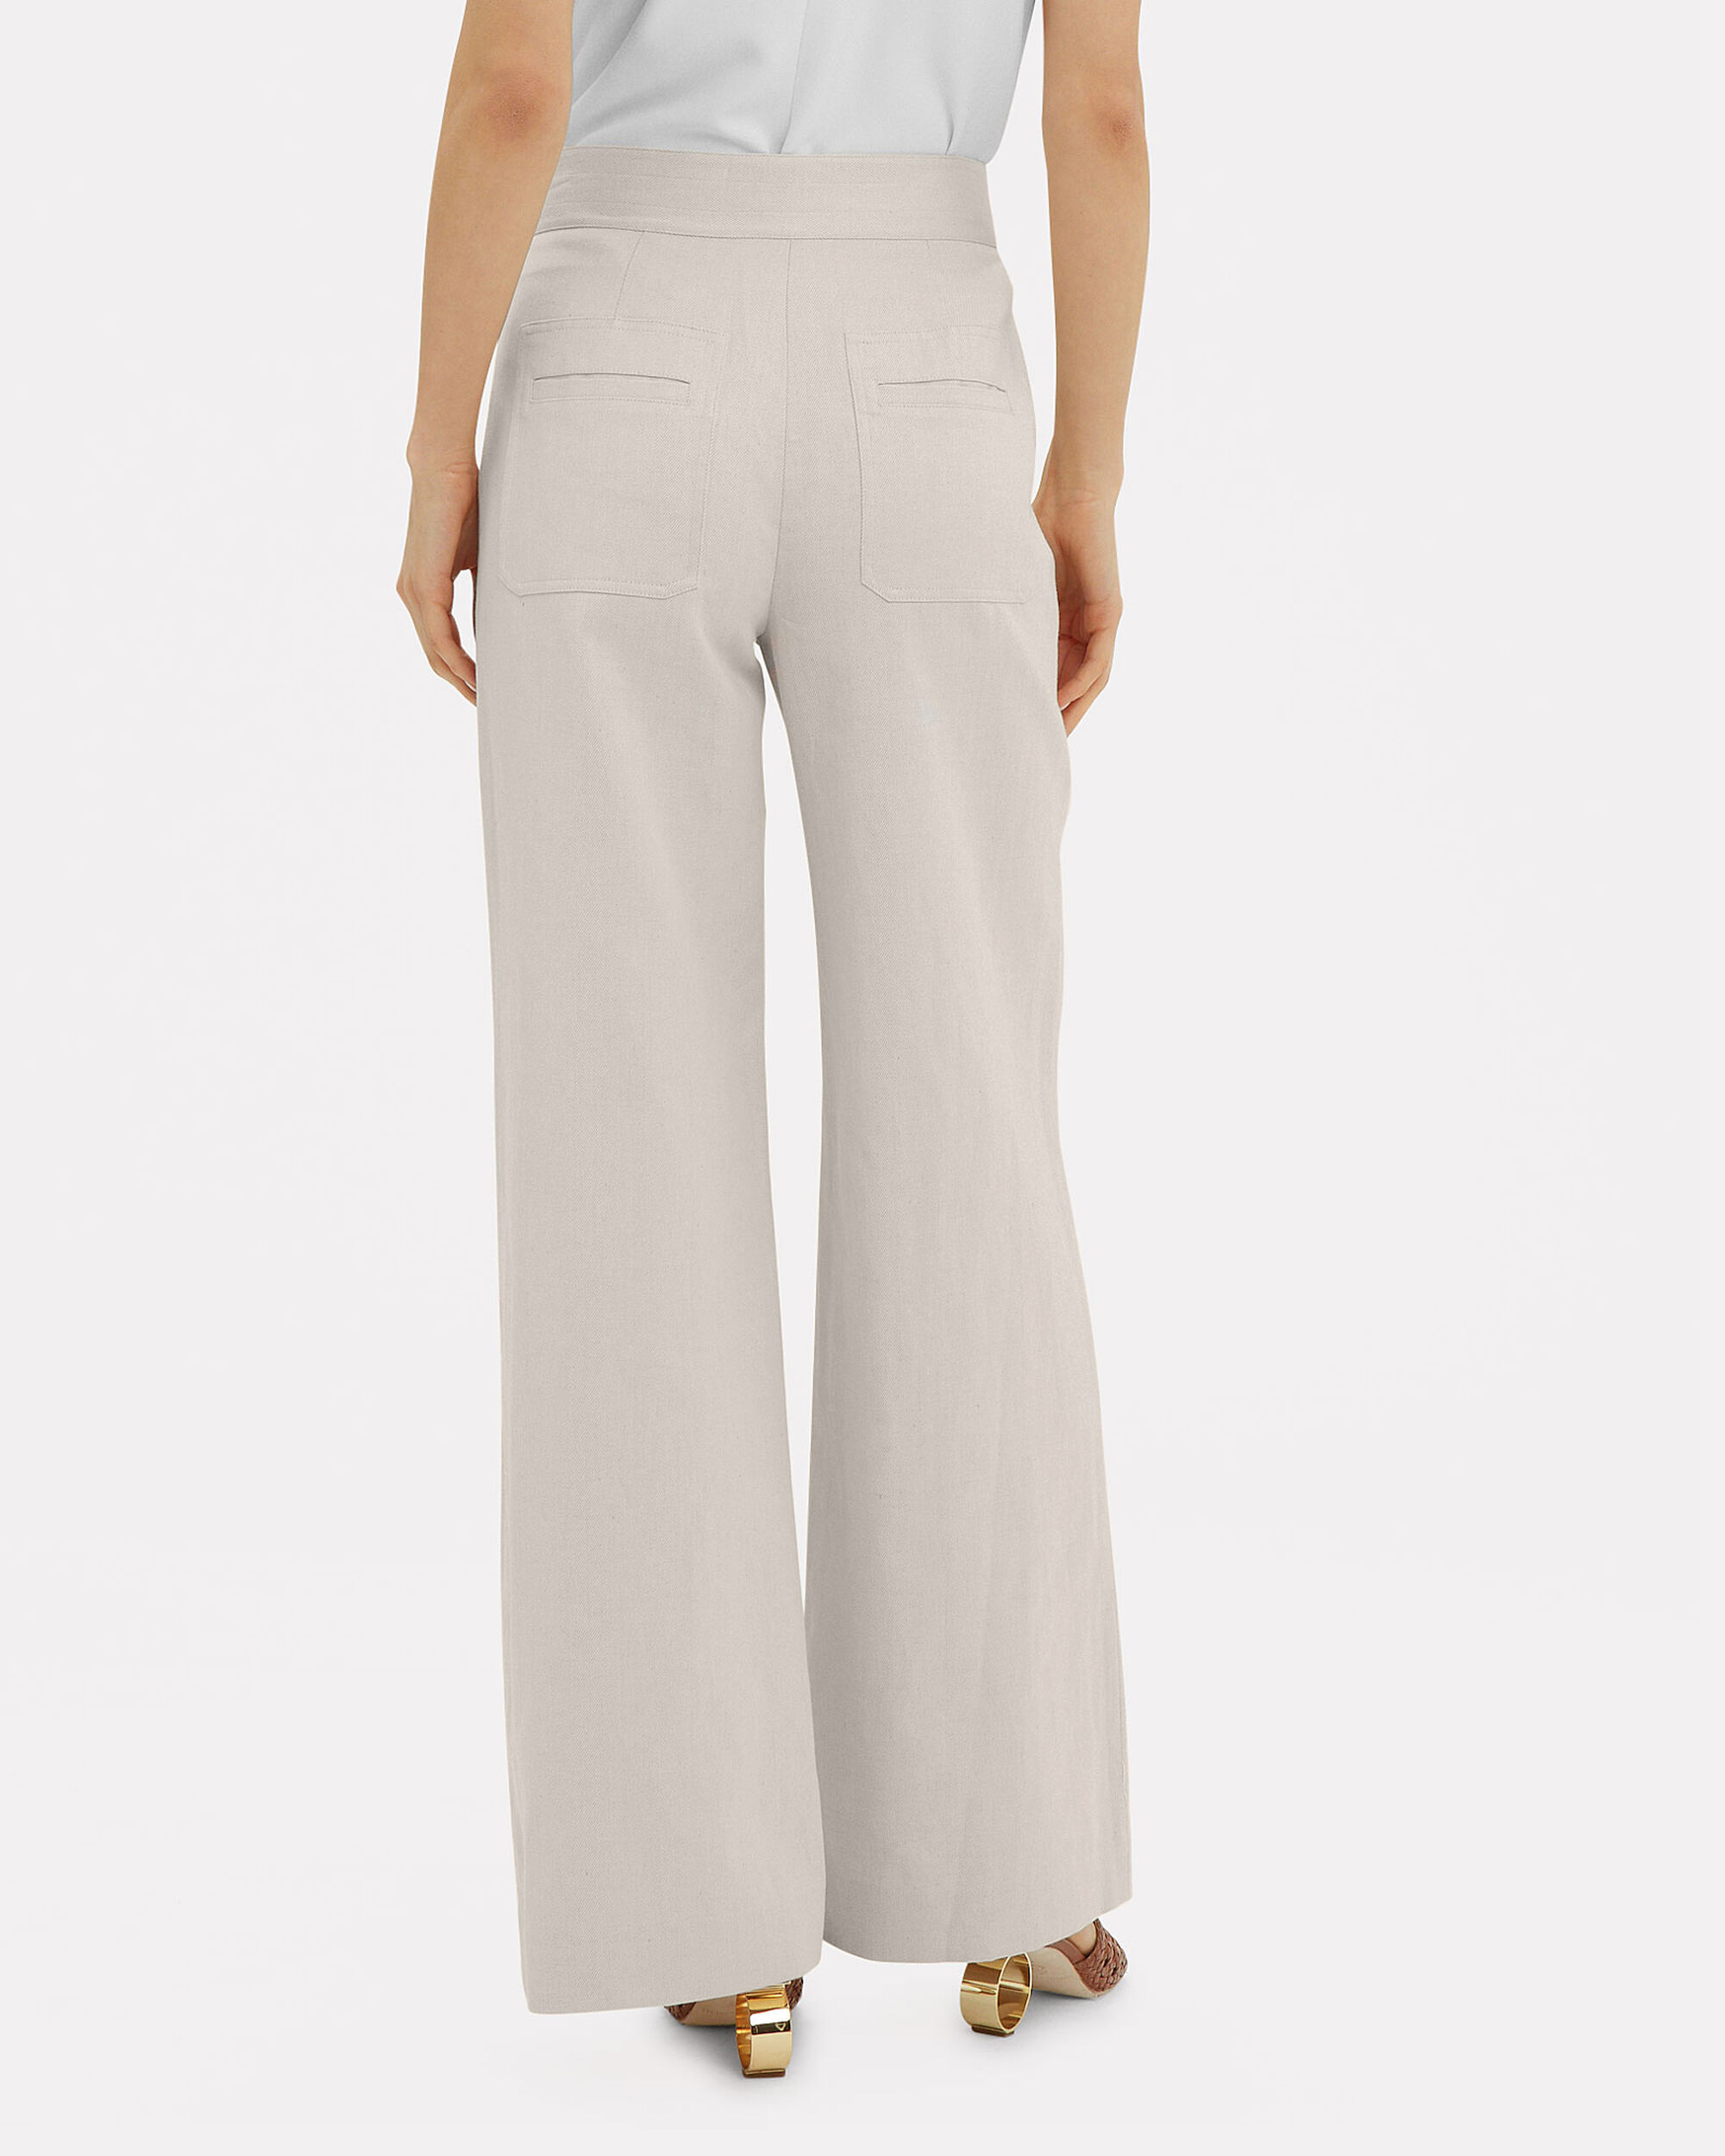 Barrett Pants, IVORY, hi-res